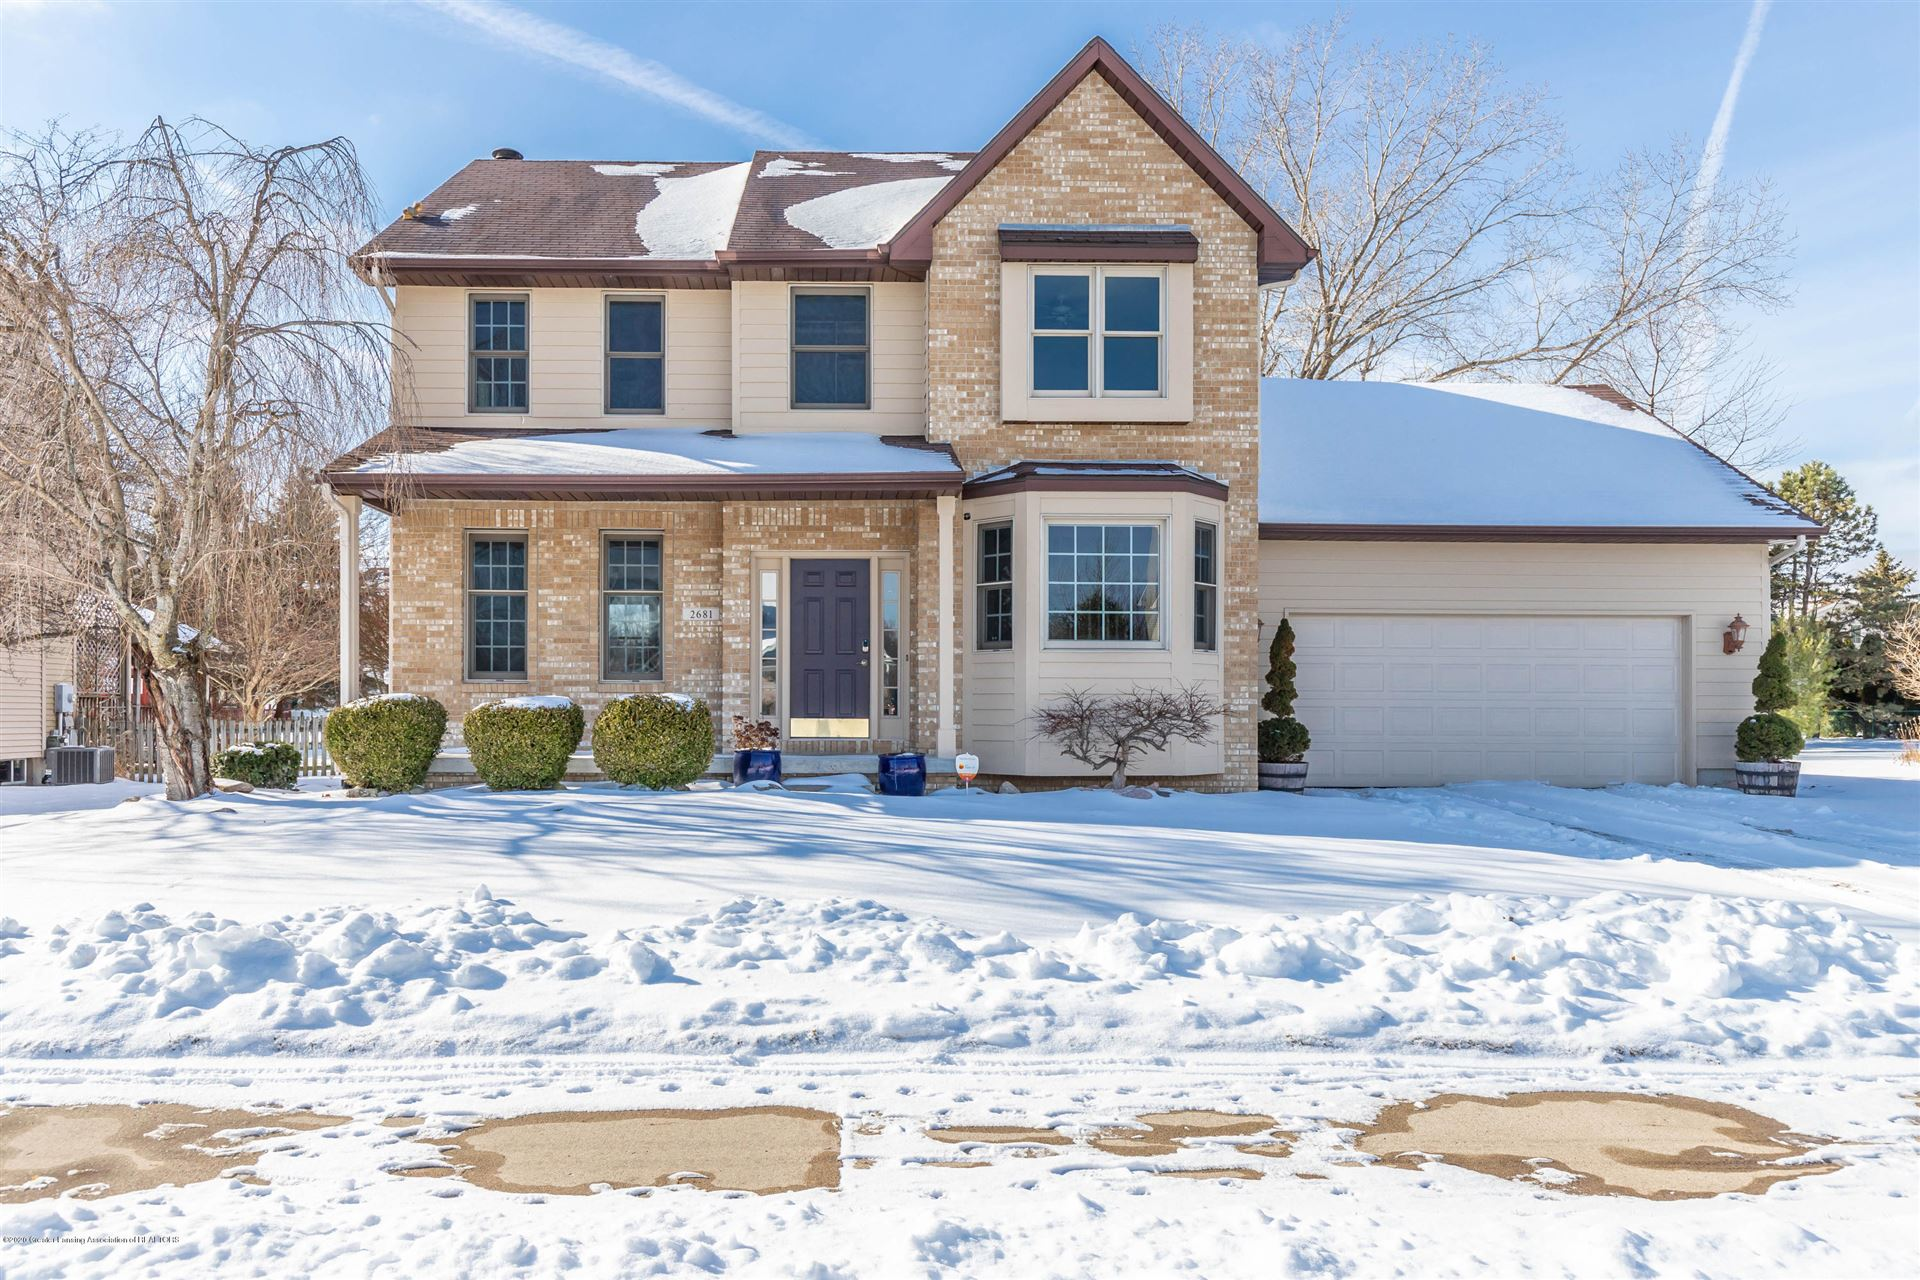 Photo of 2681 Hydra Drive, Lansing, MI 48911 (MLS # 243757)